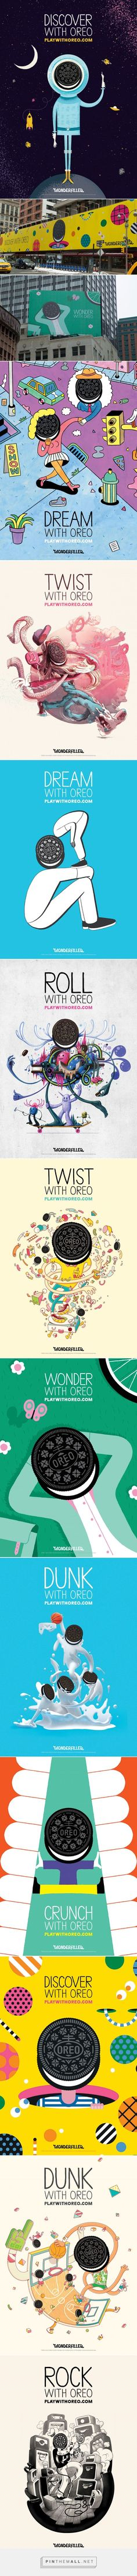 Oreo Gets 10 Artists to Produce Beautifully Dreamy Outdoor Illustrations   Adweek